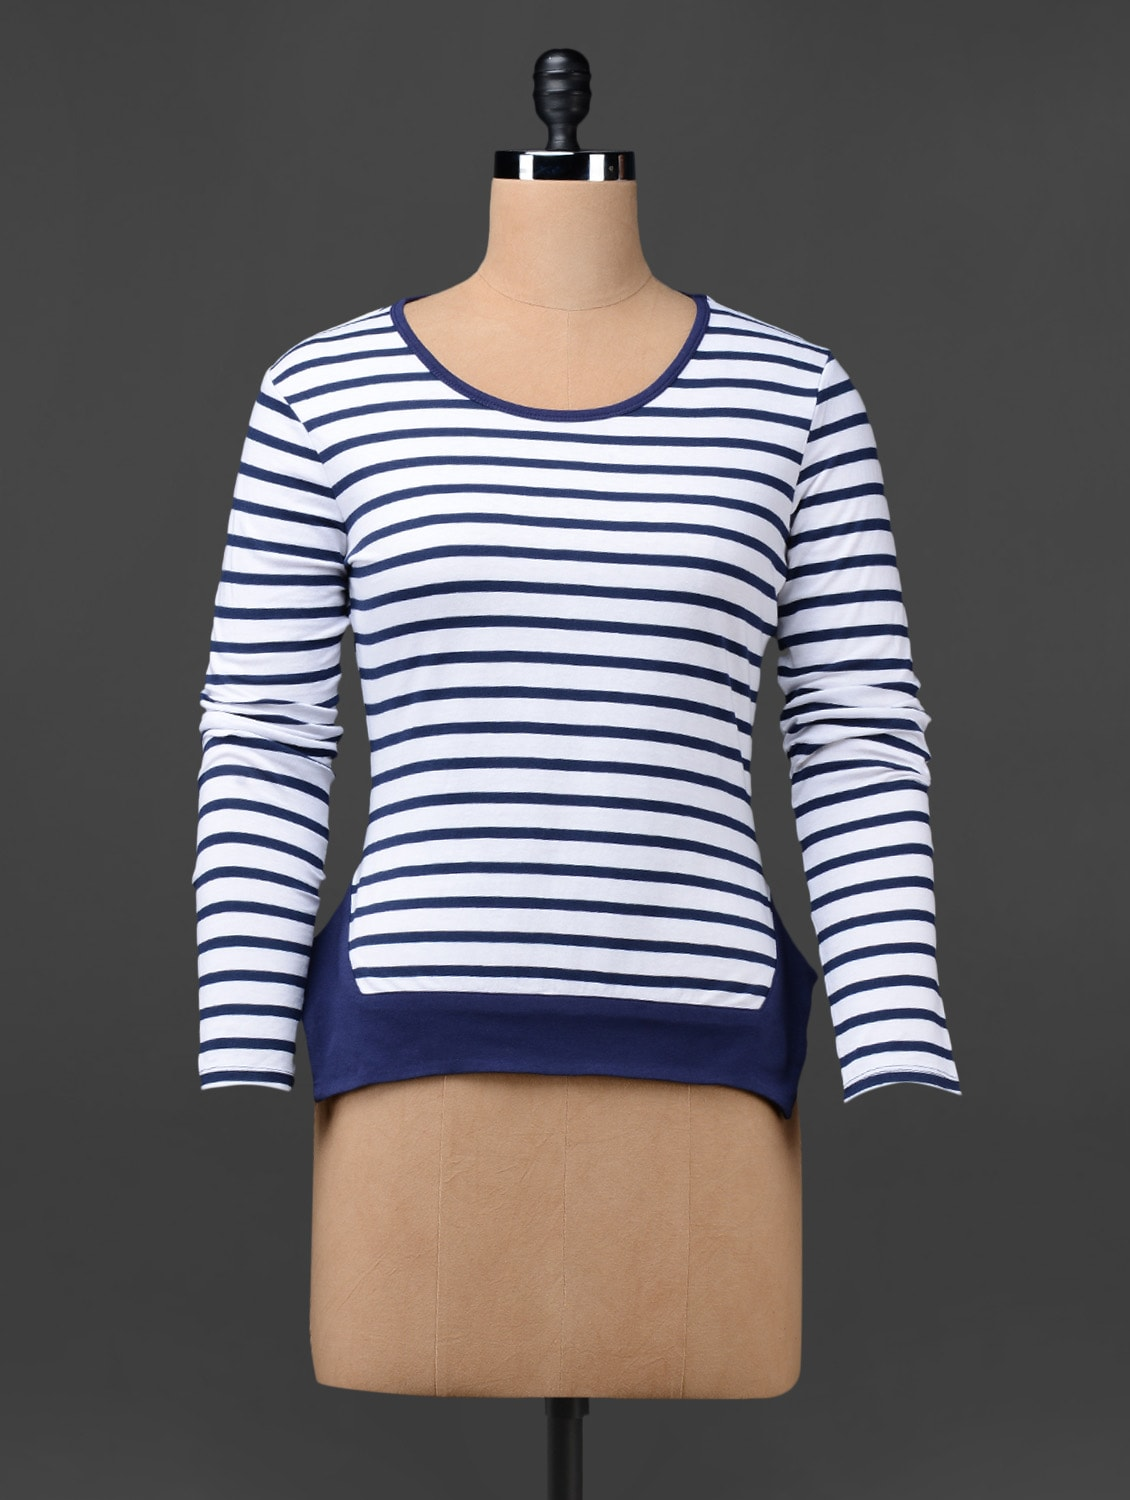 Long Sleeves Striped Knitted Cotton Top - Colbrii